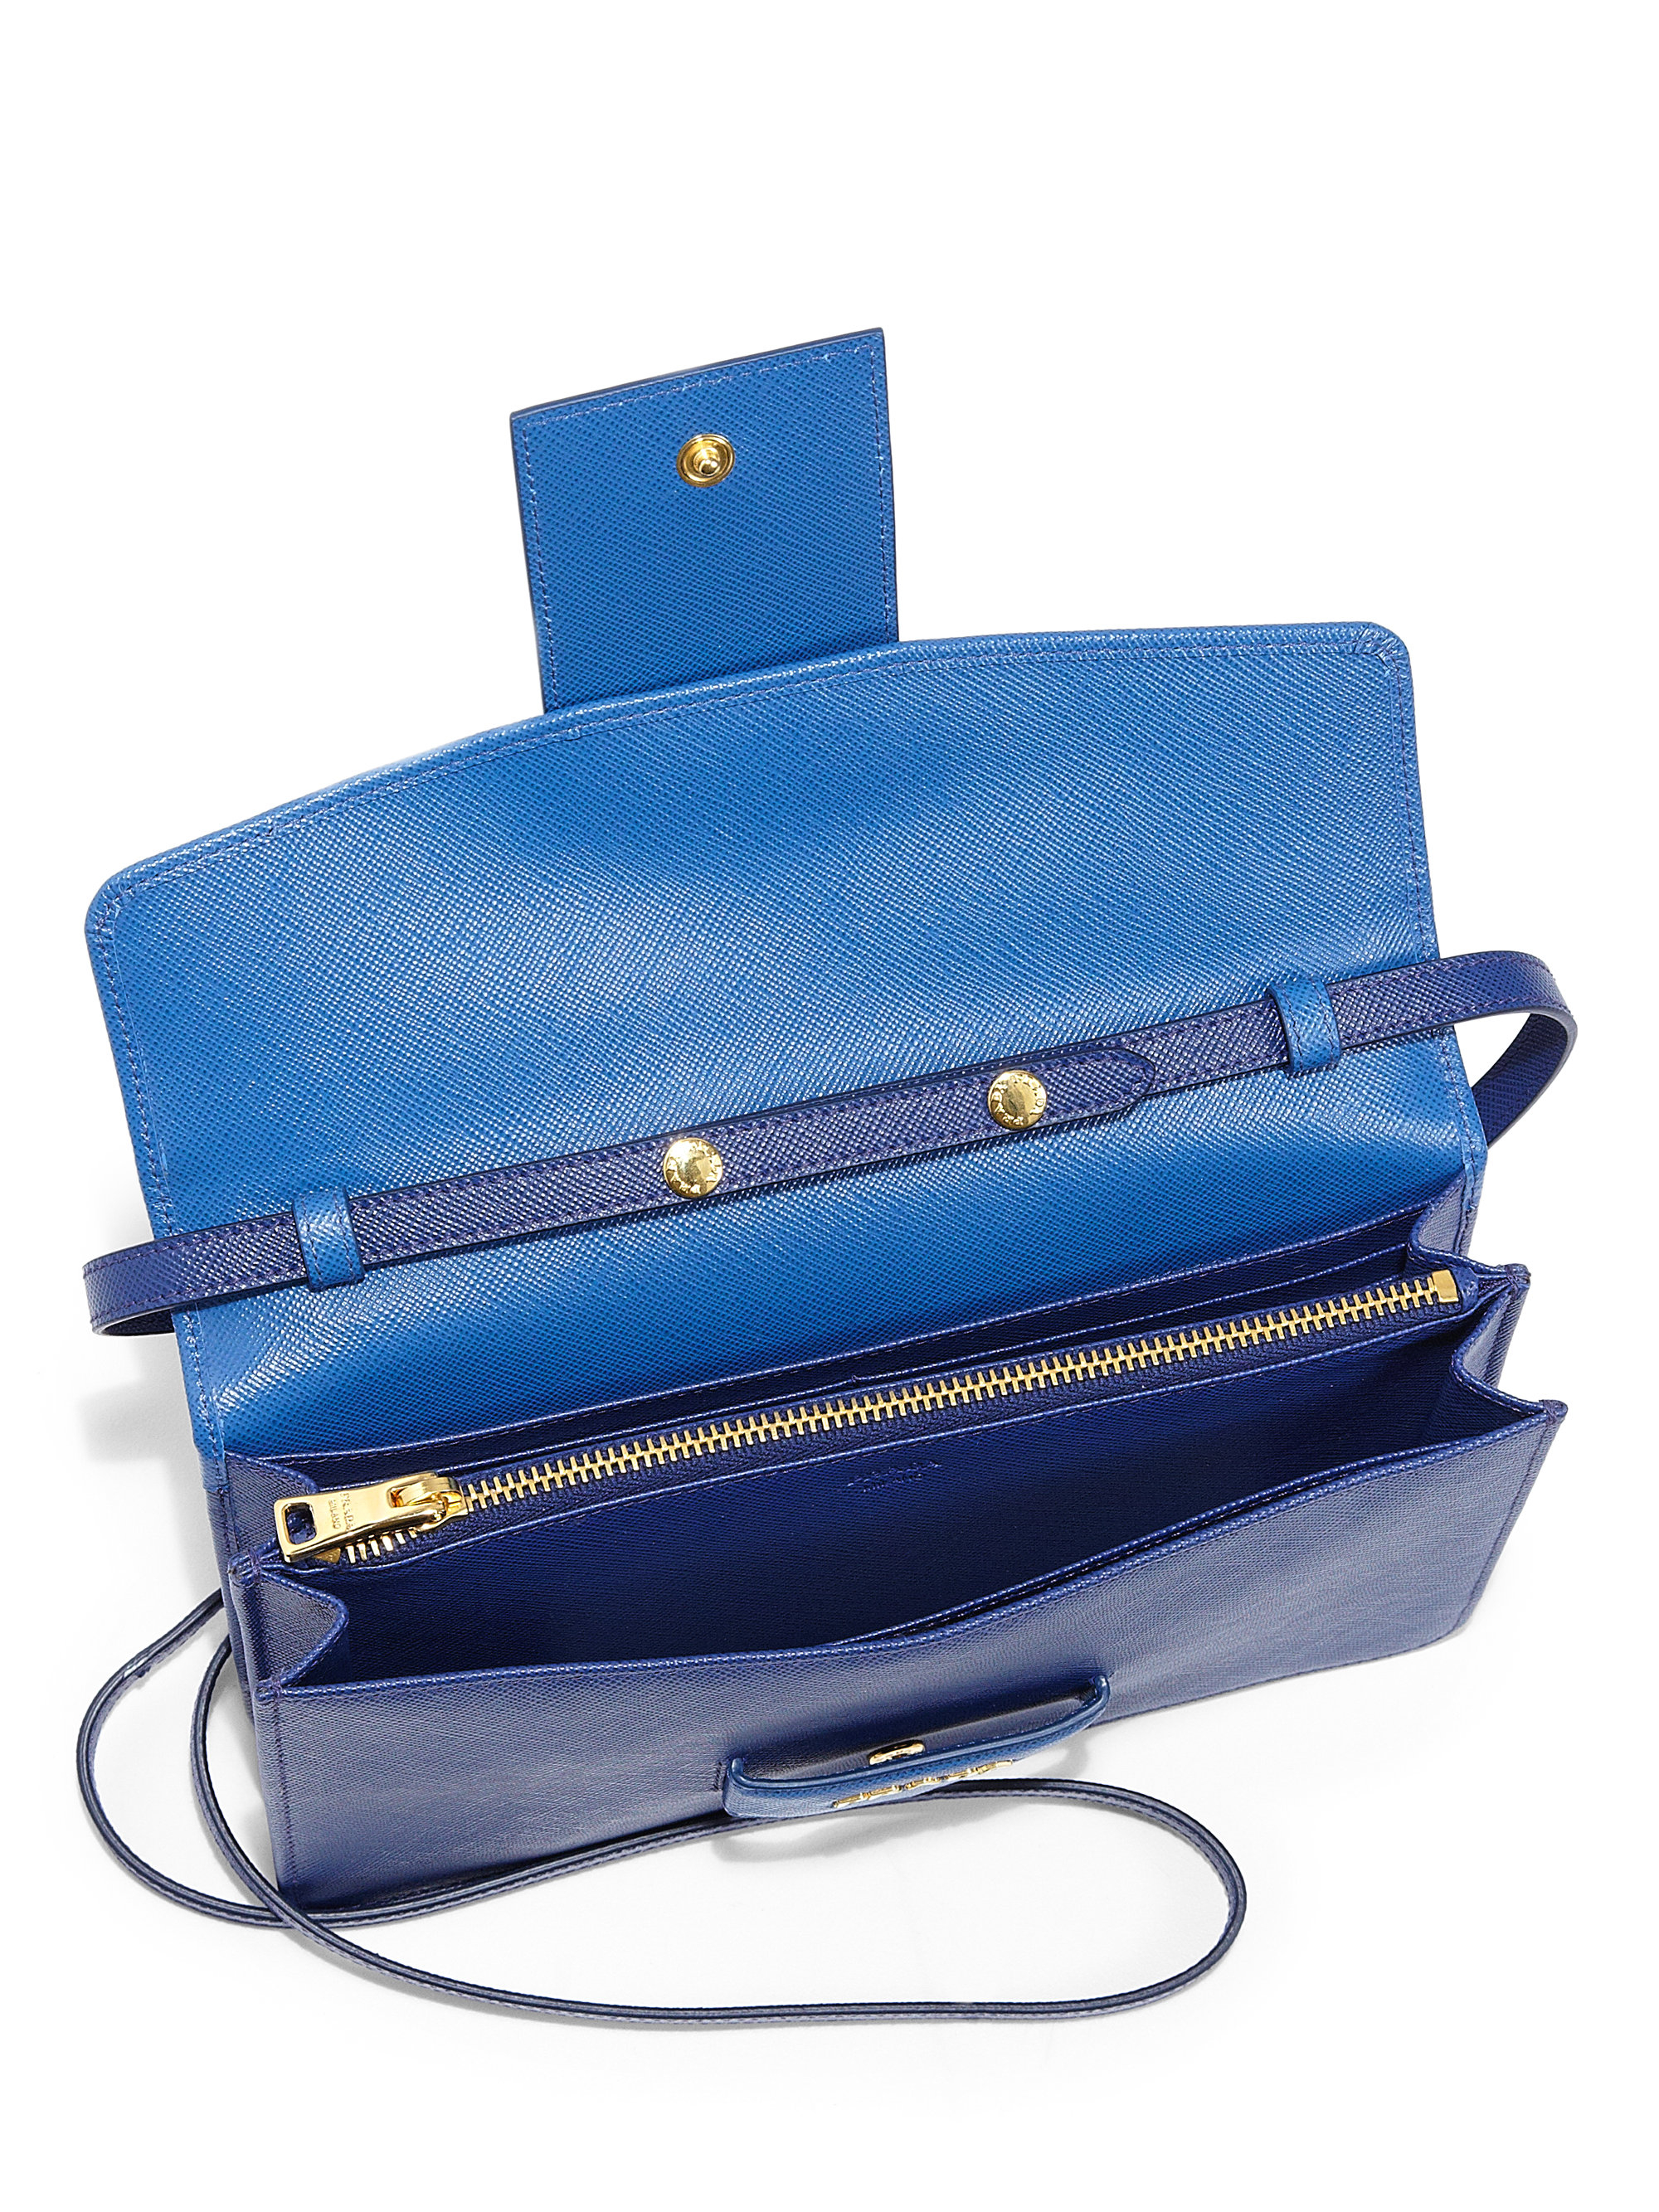 prada replica purses - prada bi-color madras crossbody bag, cheap fake prada purses